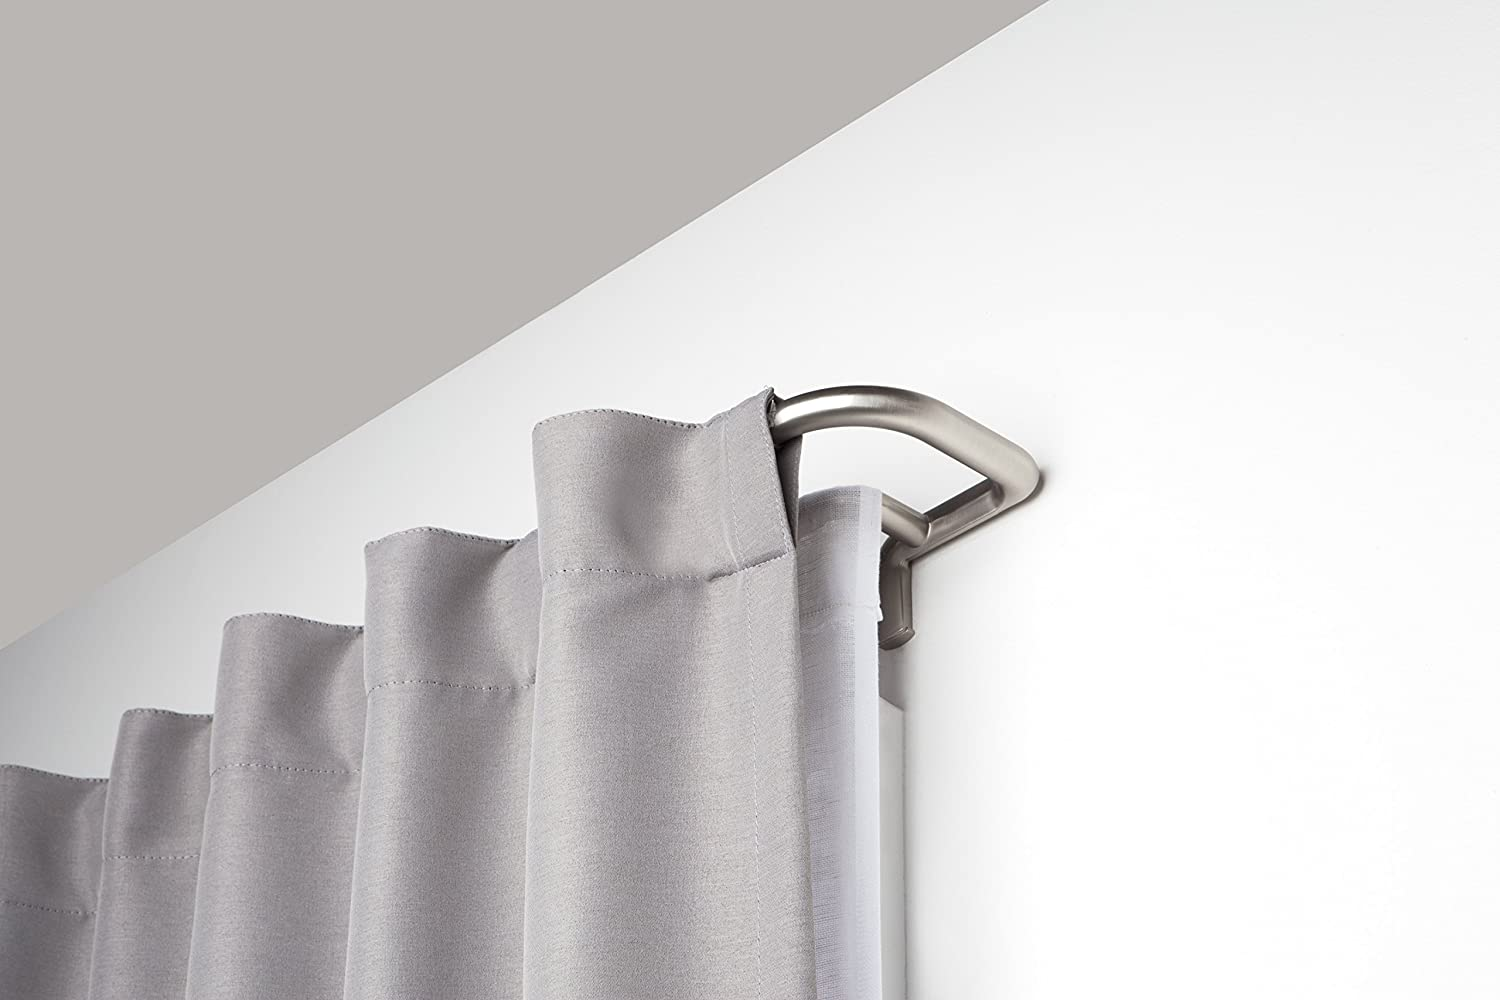 Umbra Twilight Double Curtain Rod Set – Wrap Around Design is Ideal for Blackout or Room Darkening Panels, 48-88, Nickel: Home & Kitchen